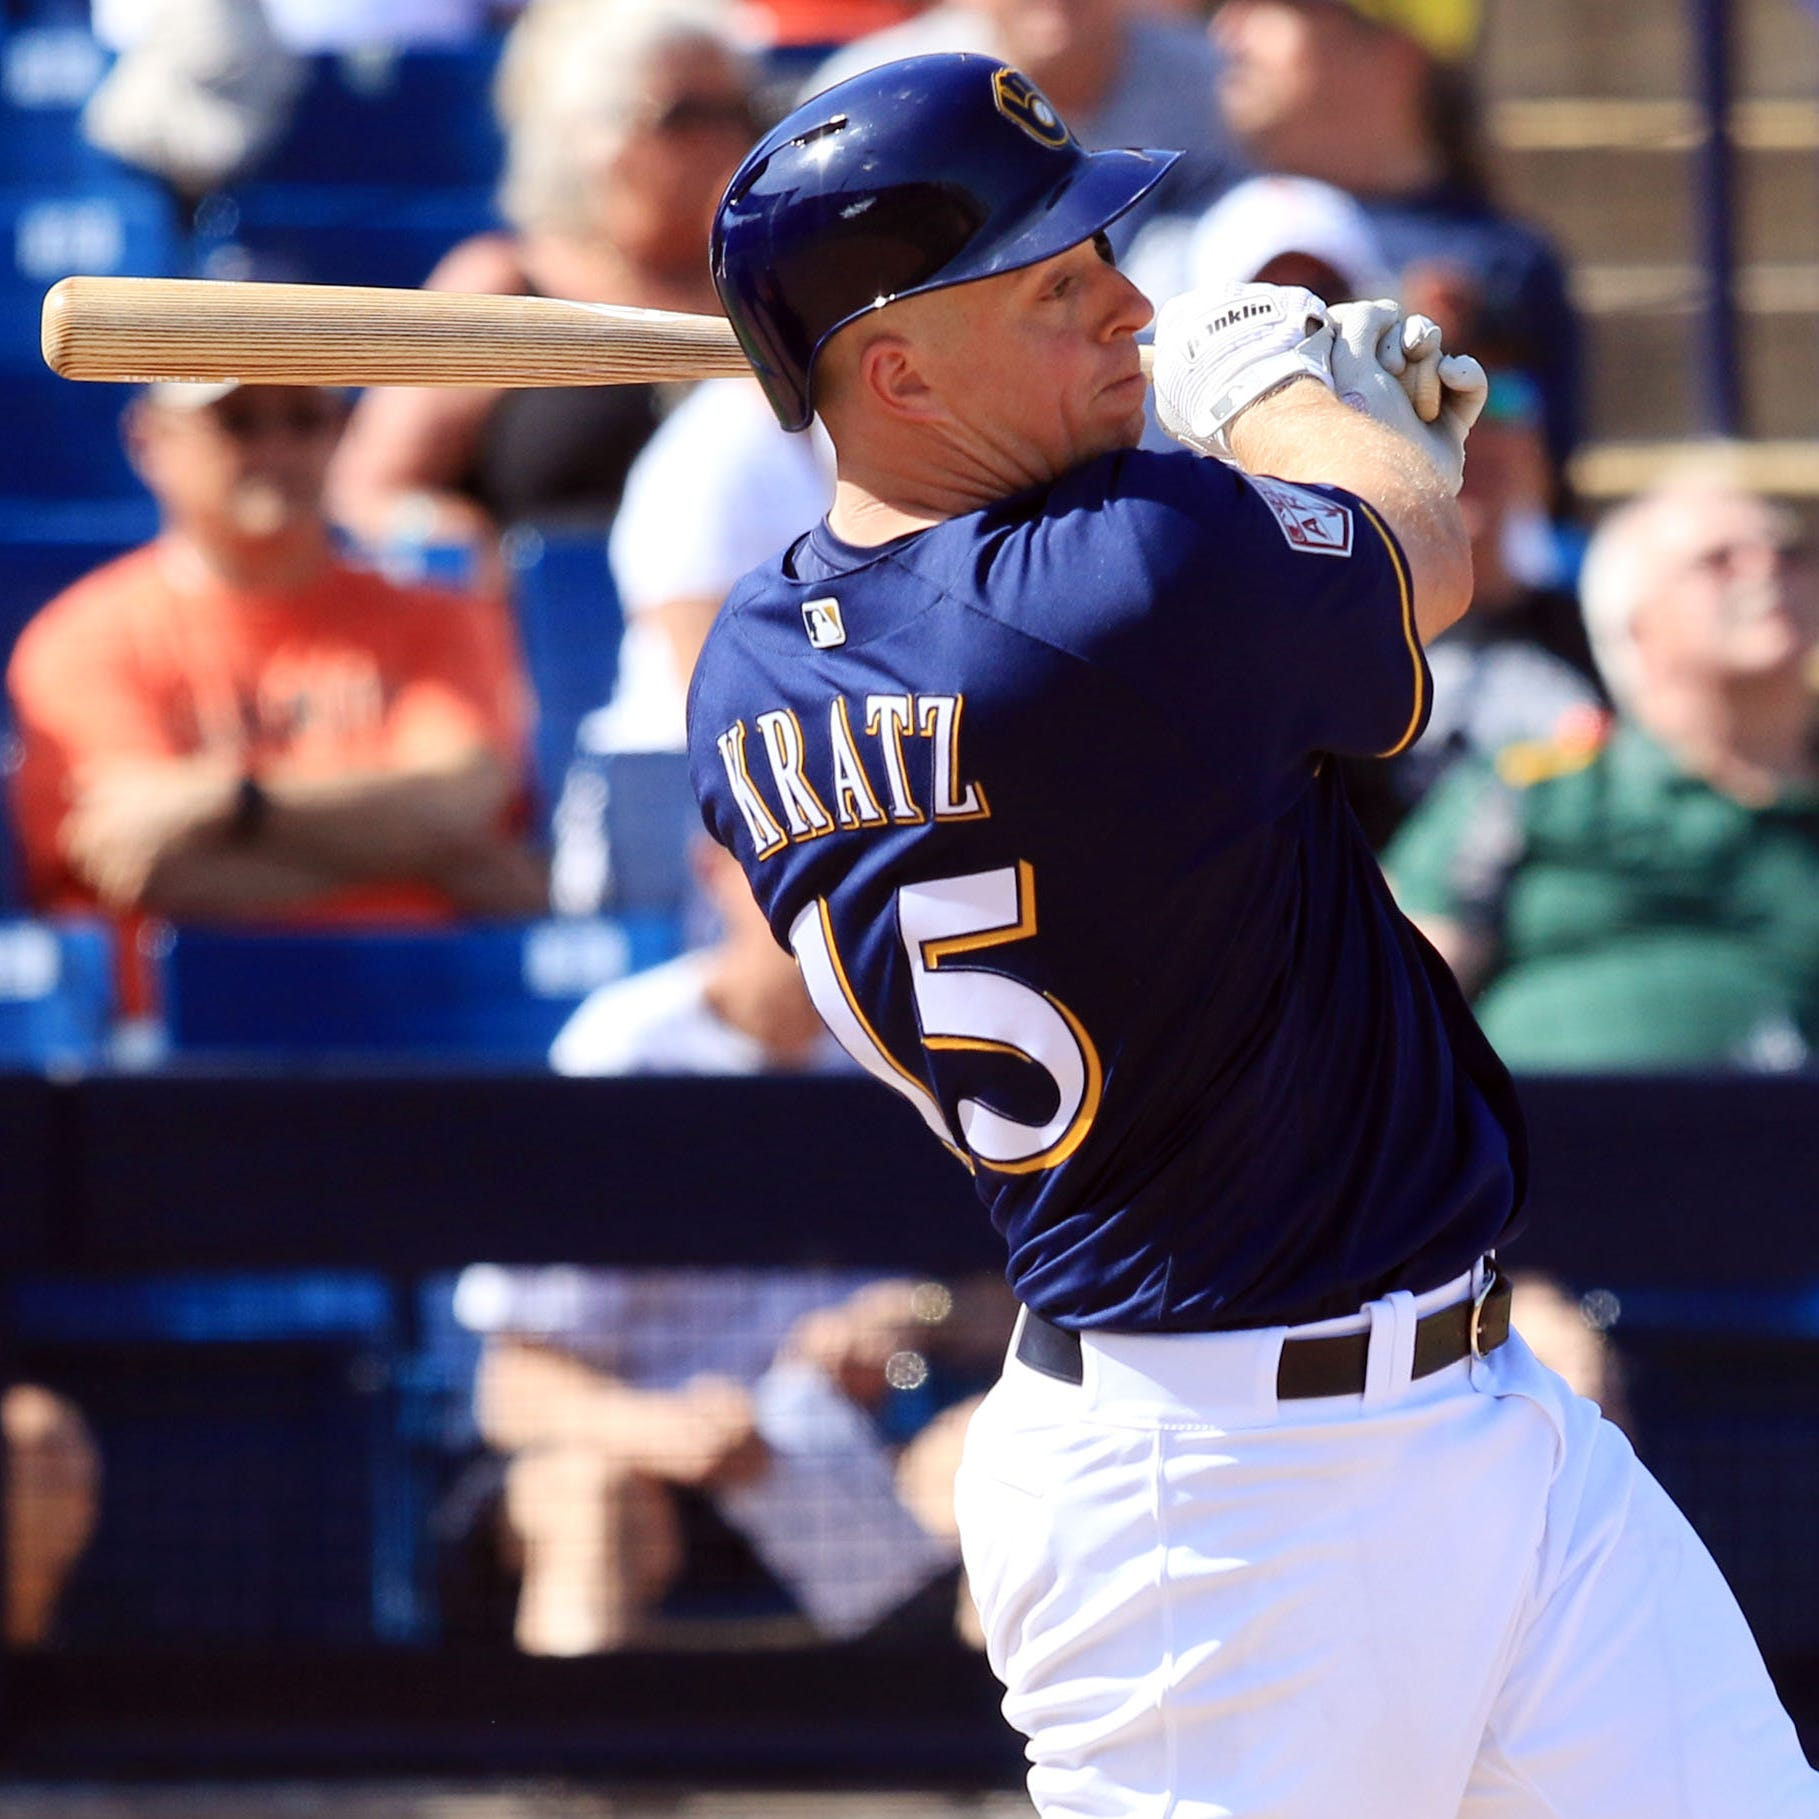 Brewers trade catcher Erik Kratz to San Francisco for minor-league infielder C.J. Hinojosa